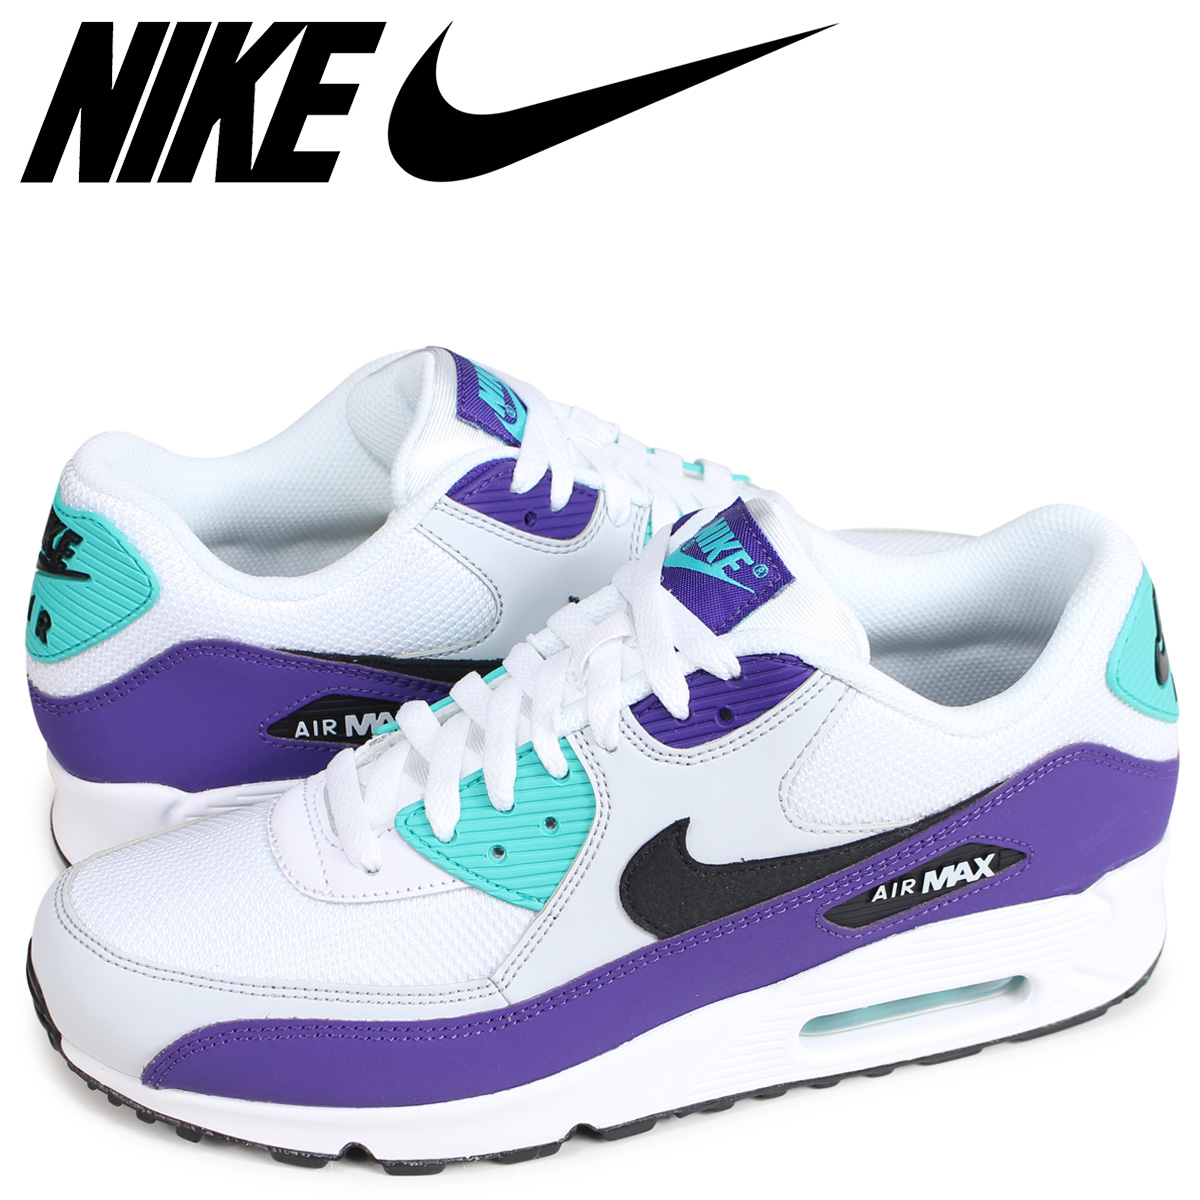 best sneakers 12880 e1ef7 NIKE AIR MAX 90 ESSENTIAL Kie Ney AMAX 90 essential sneakers men white  AJ1285-103